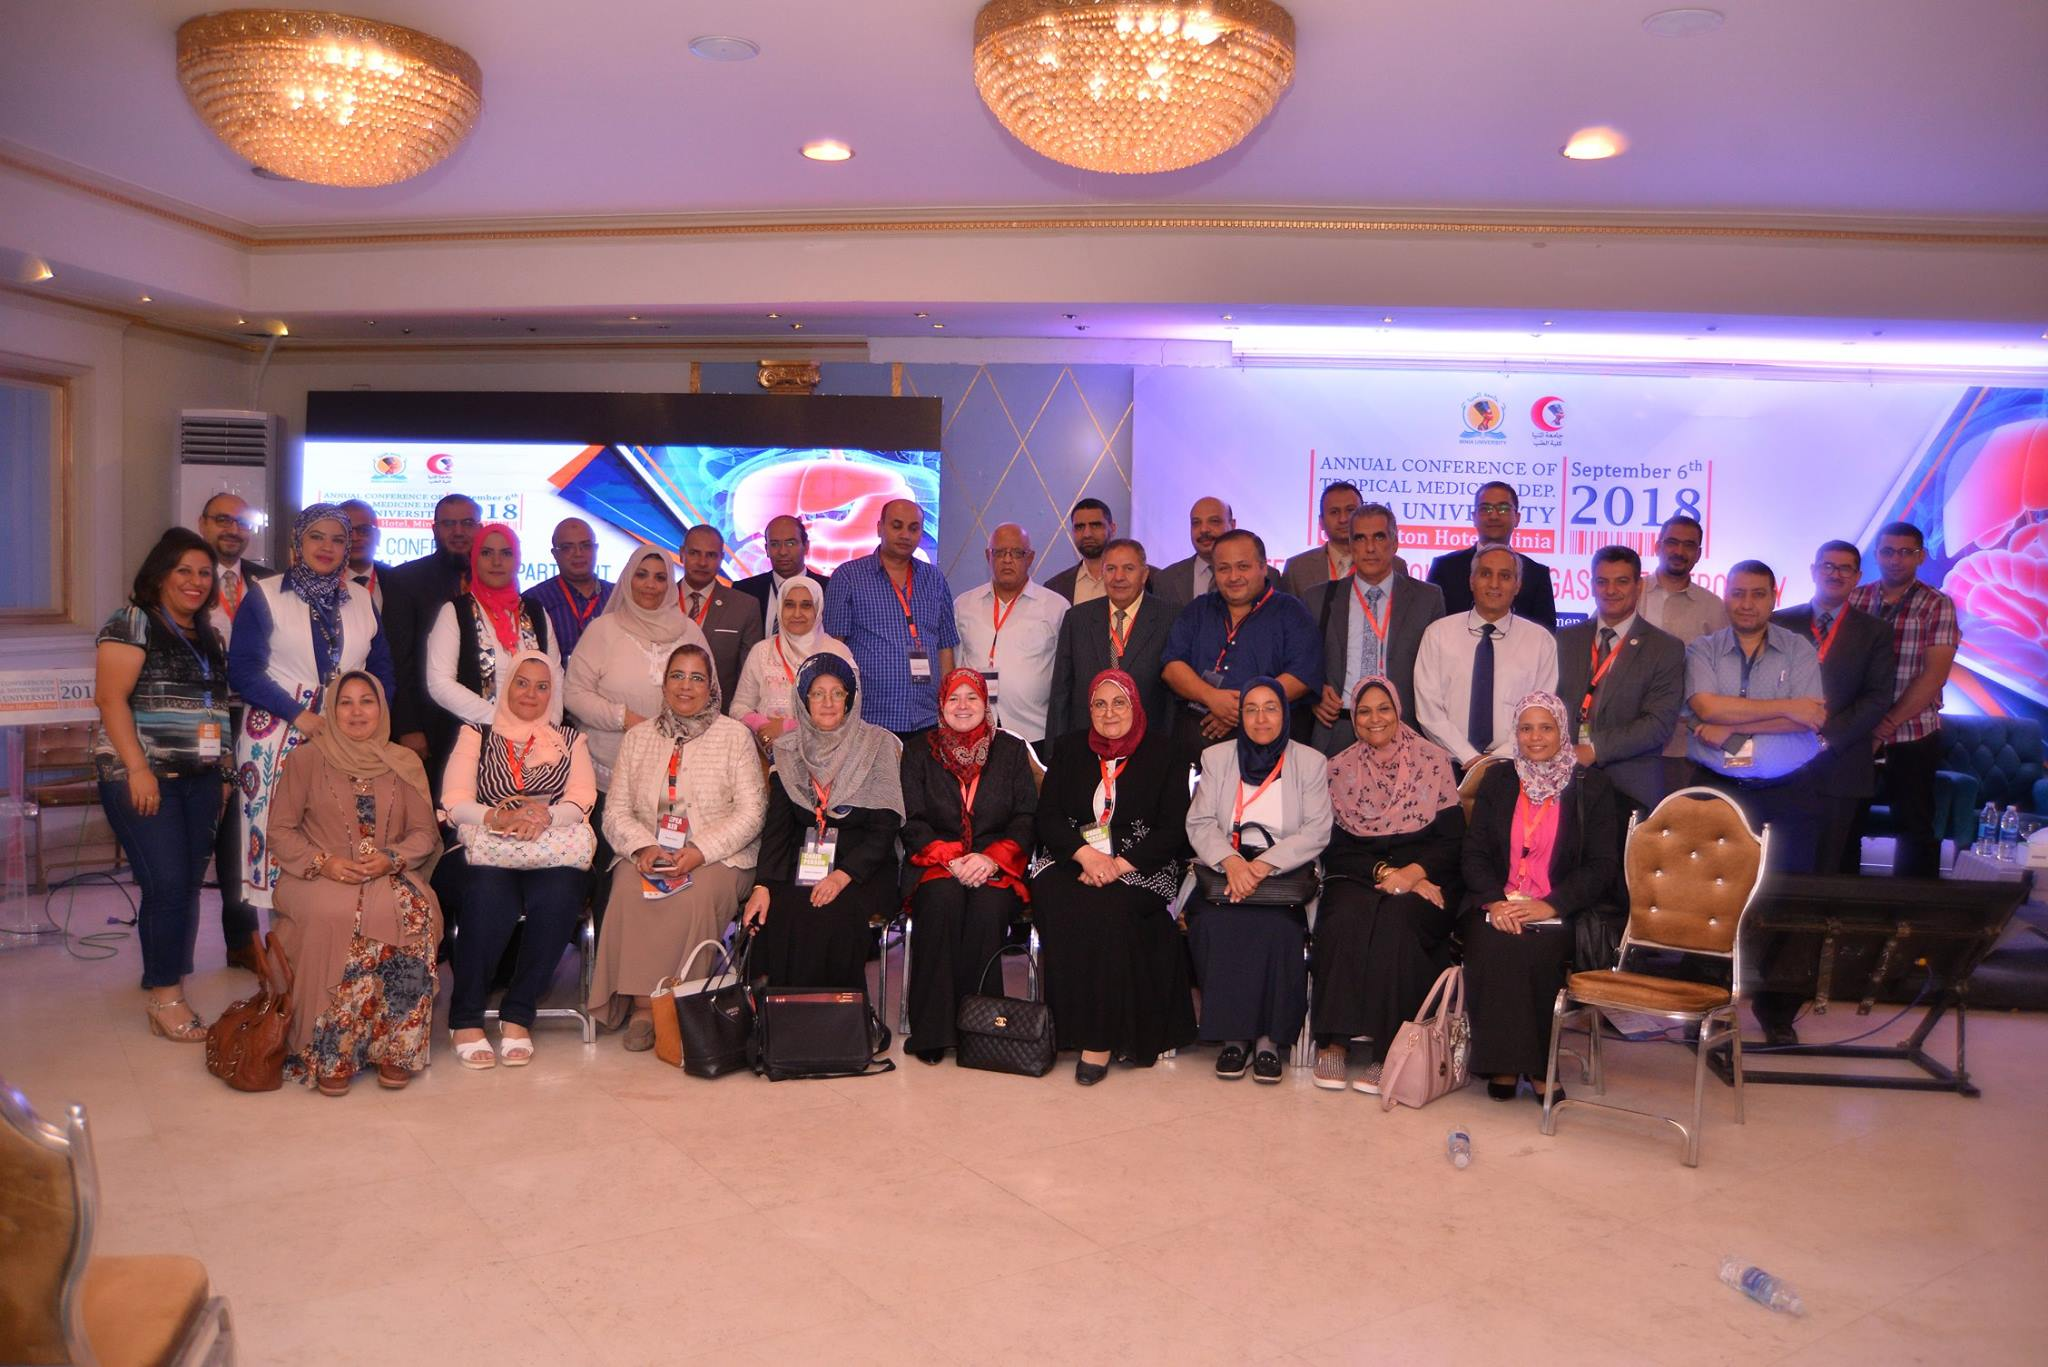 3rd Annual Conference of Tropical Medicine